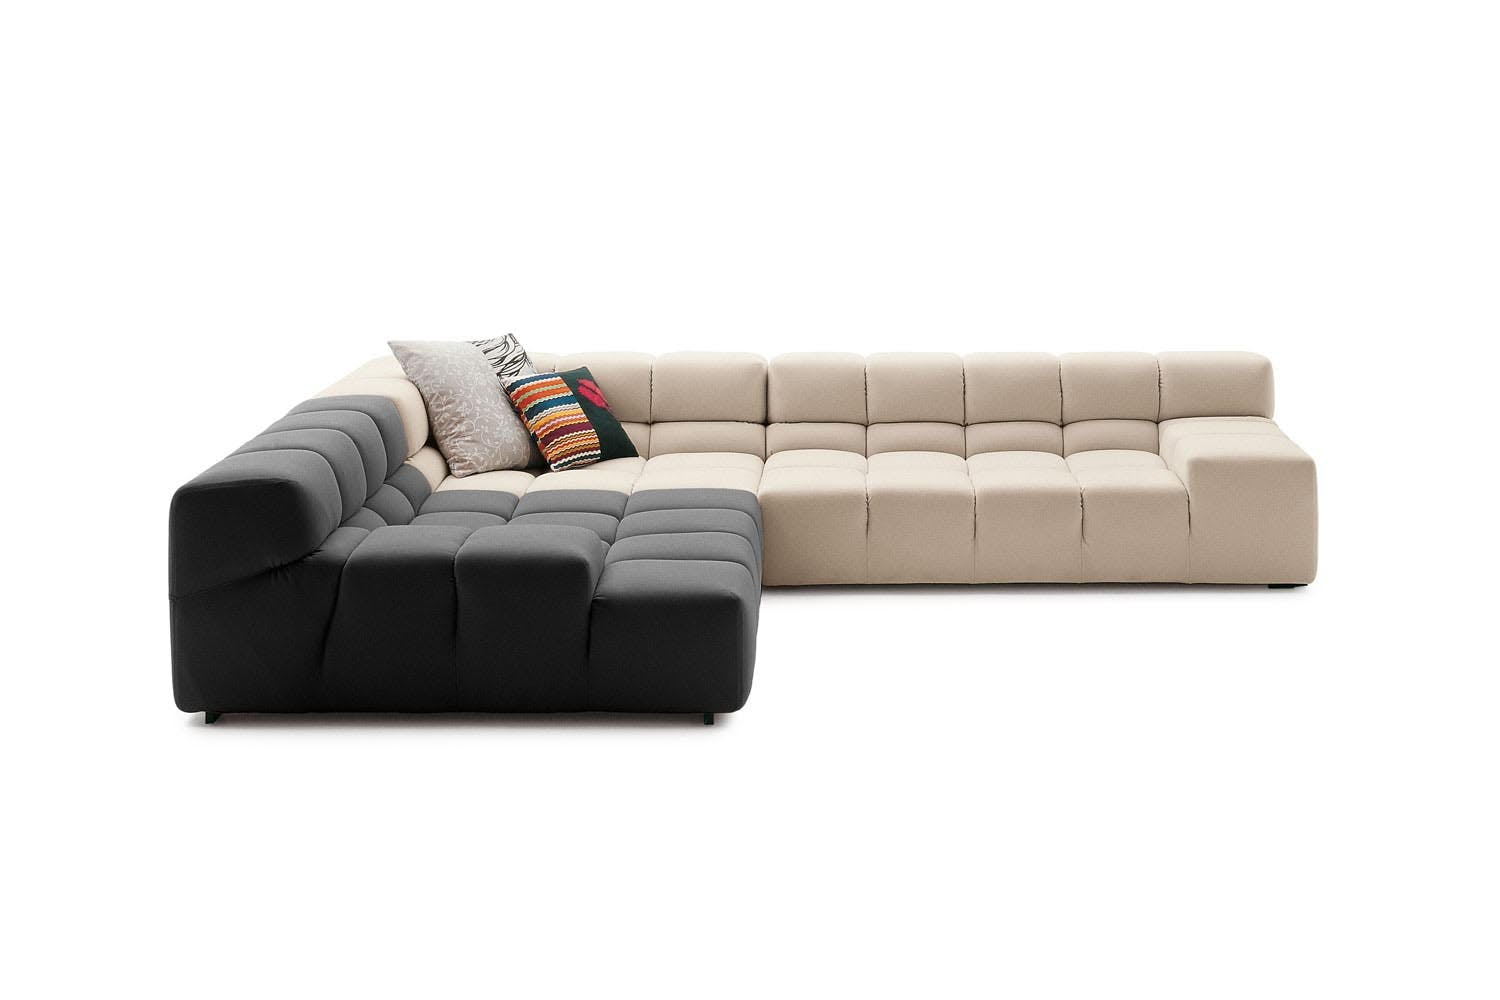 Tufty Time Sofa By Patricia Urquiola For B B Italia Space Furniture